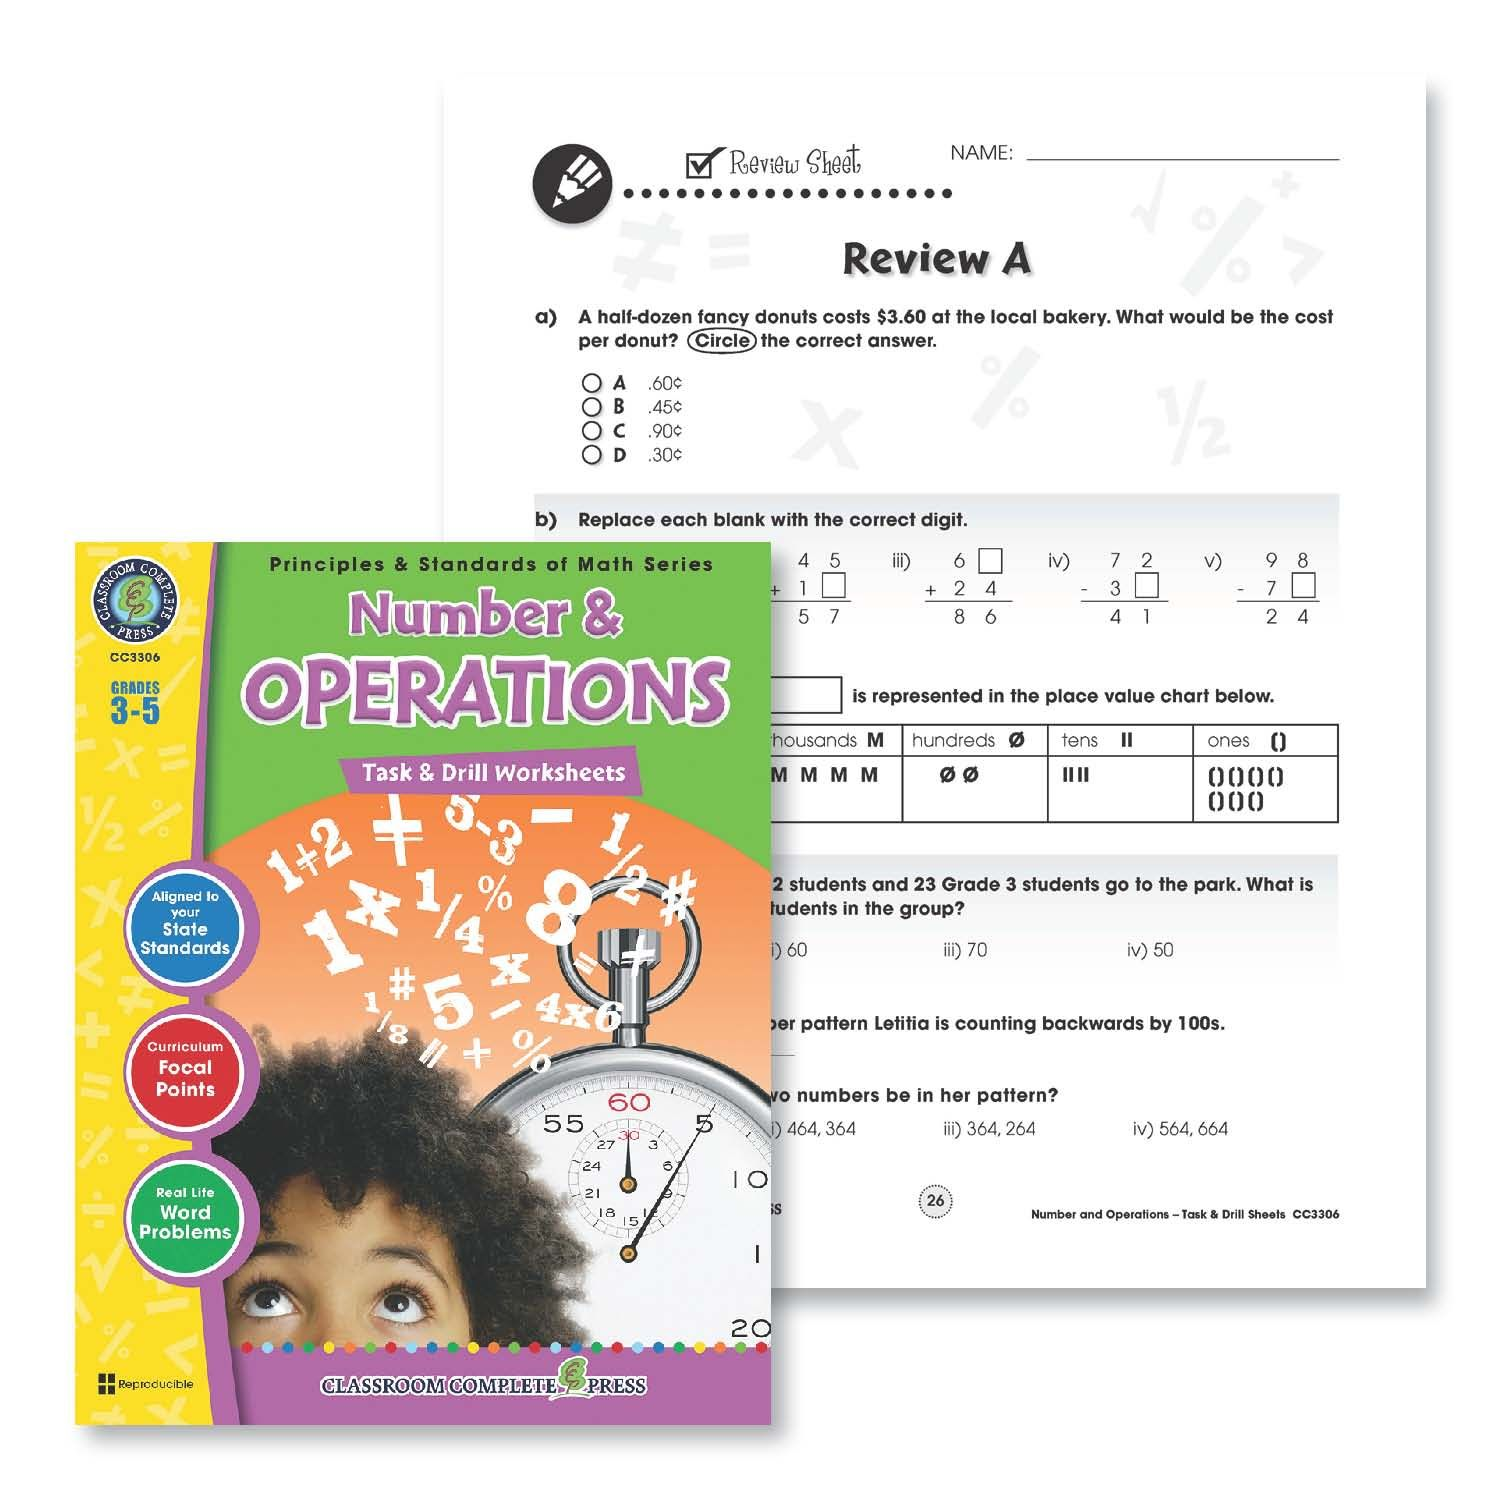 Worksheets For The Classroom Classroom Complete Press